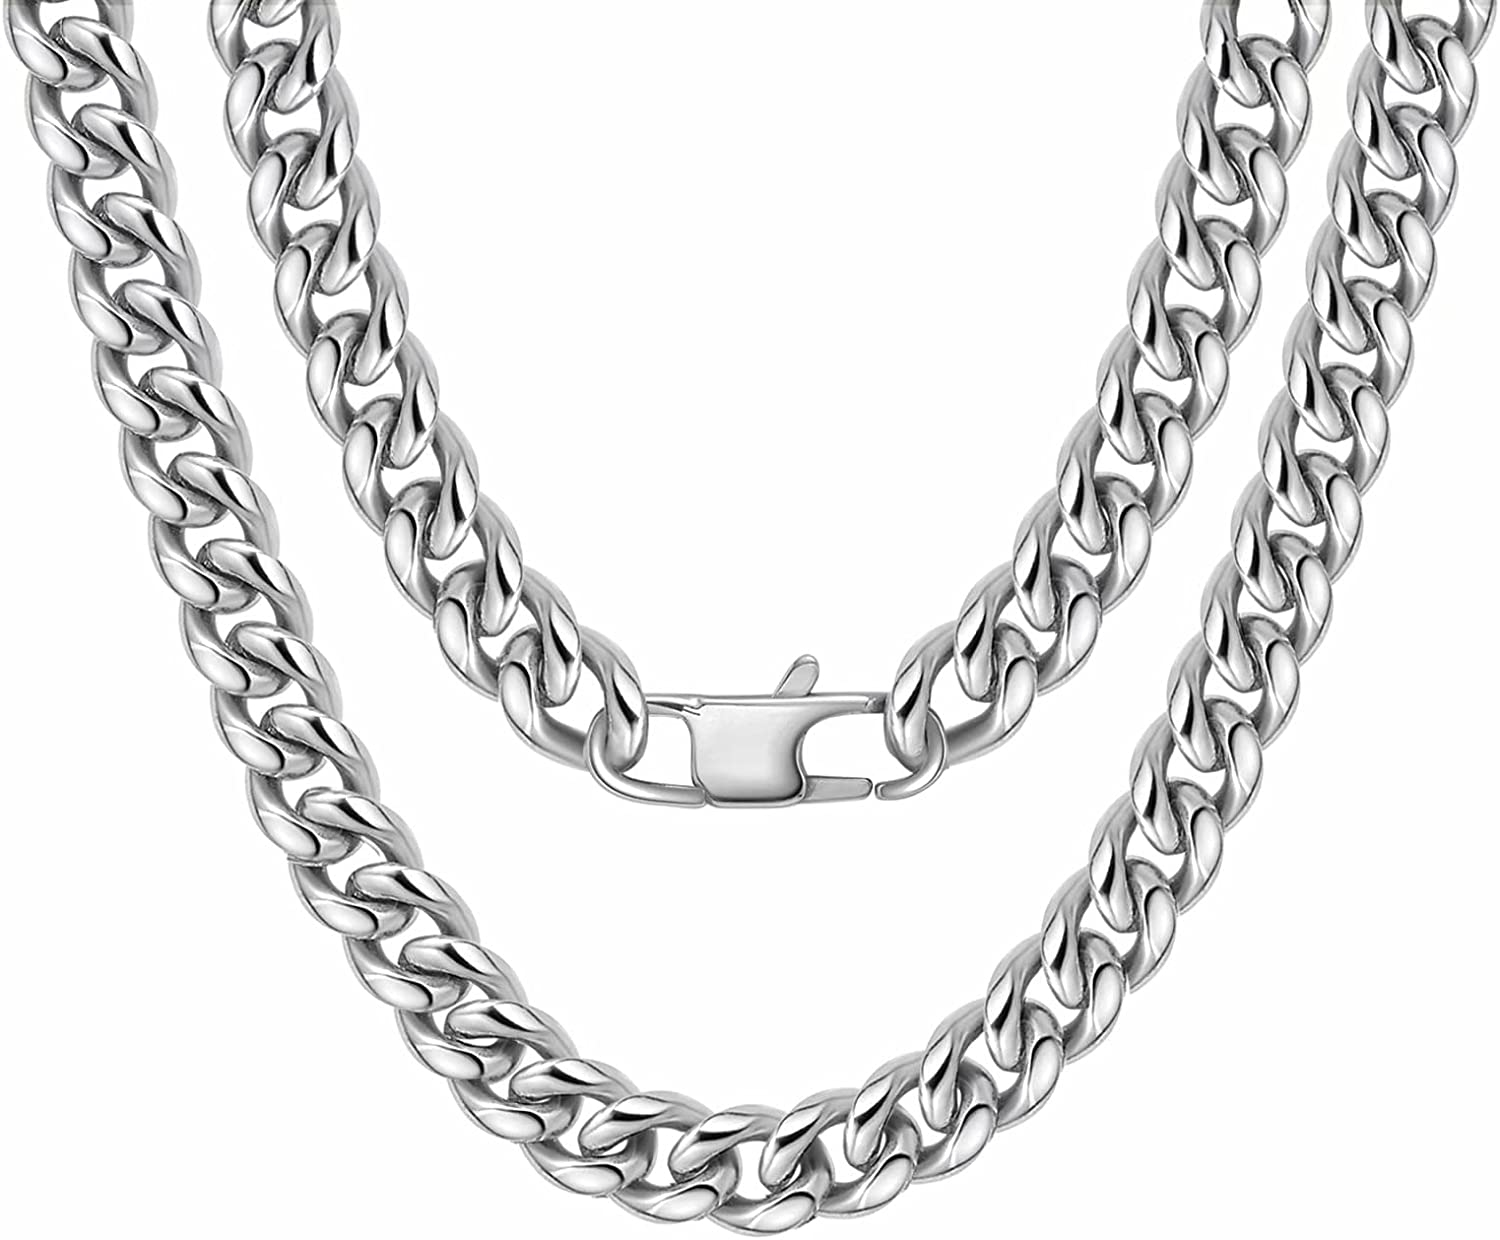 Bestelly Men Curb Cuban Translated Chain Necklace Stainless Steel trust 14MM 6MM